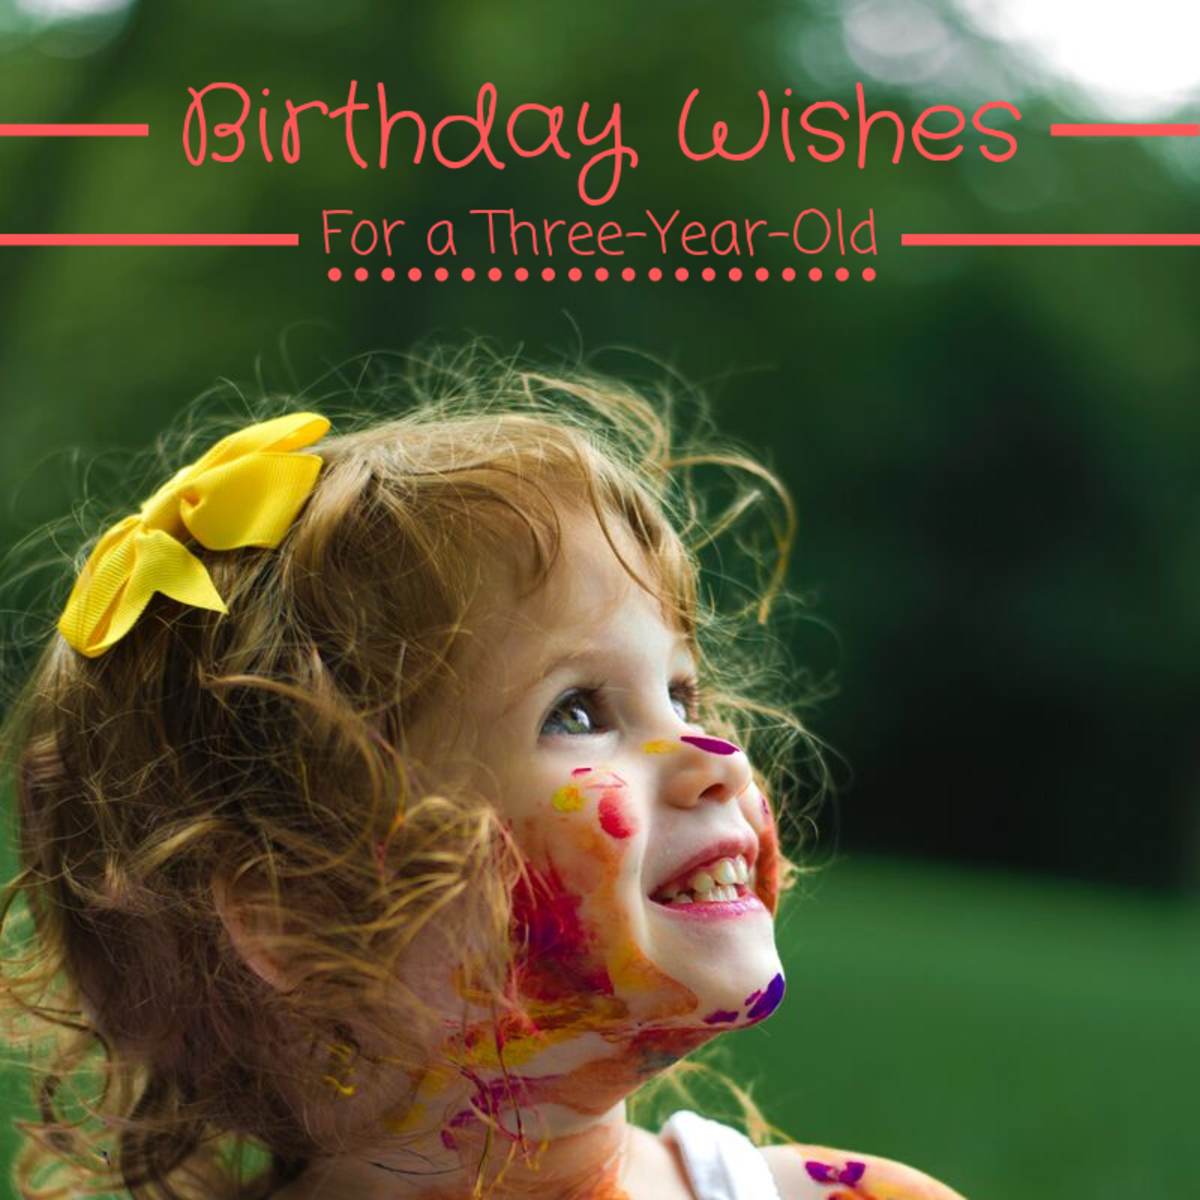 Writing a birthday card message for a three-year-old can be more difficult than it sounds. Read over these examples to get started.